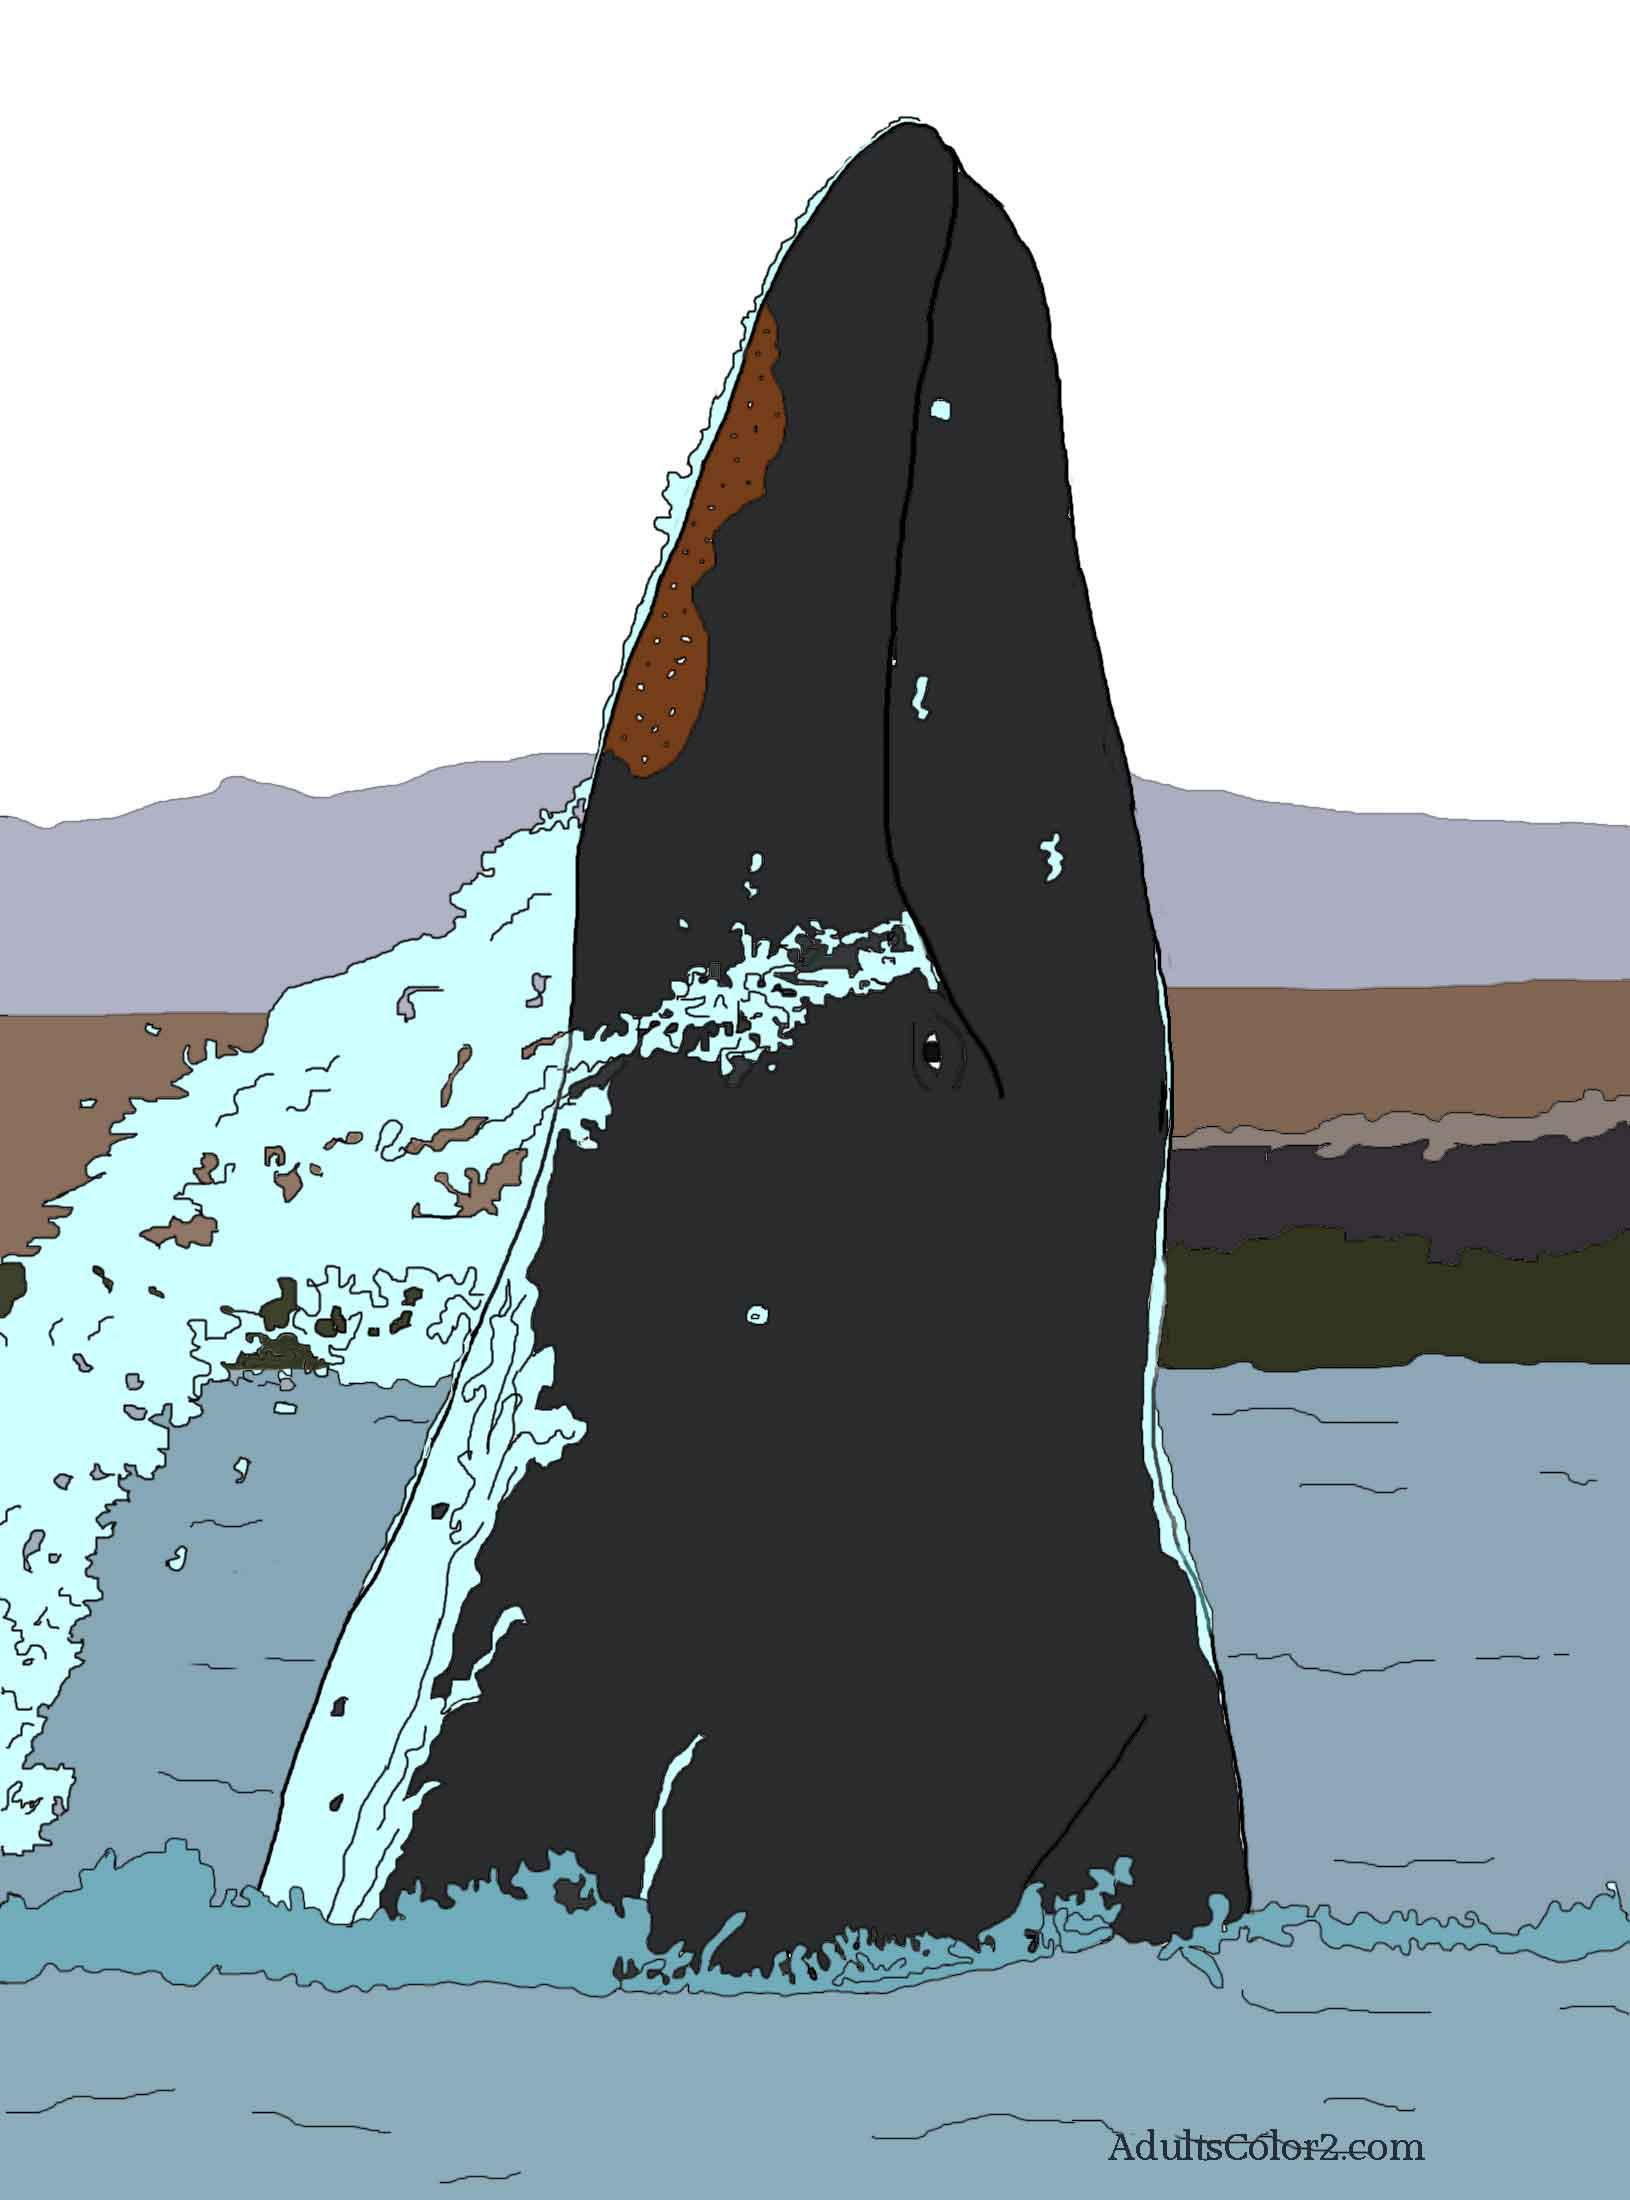 Colored in drawing of a gray whale.